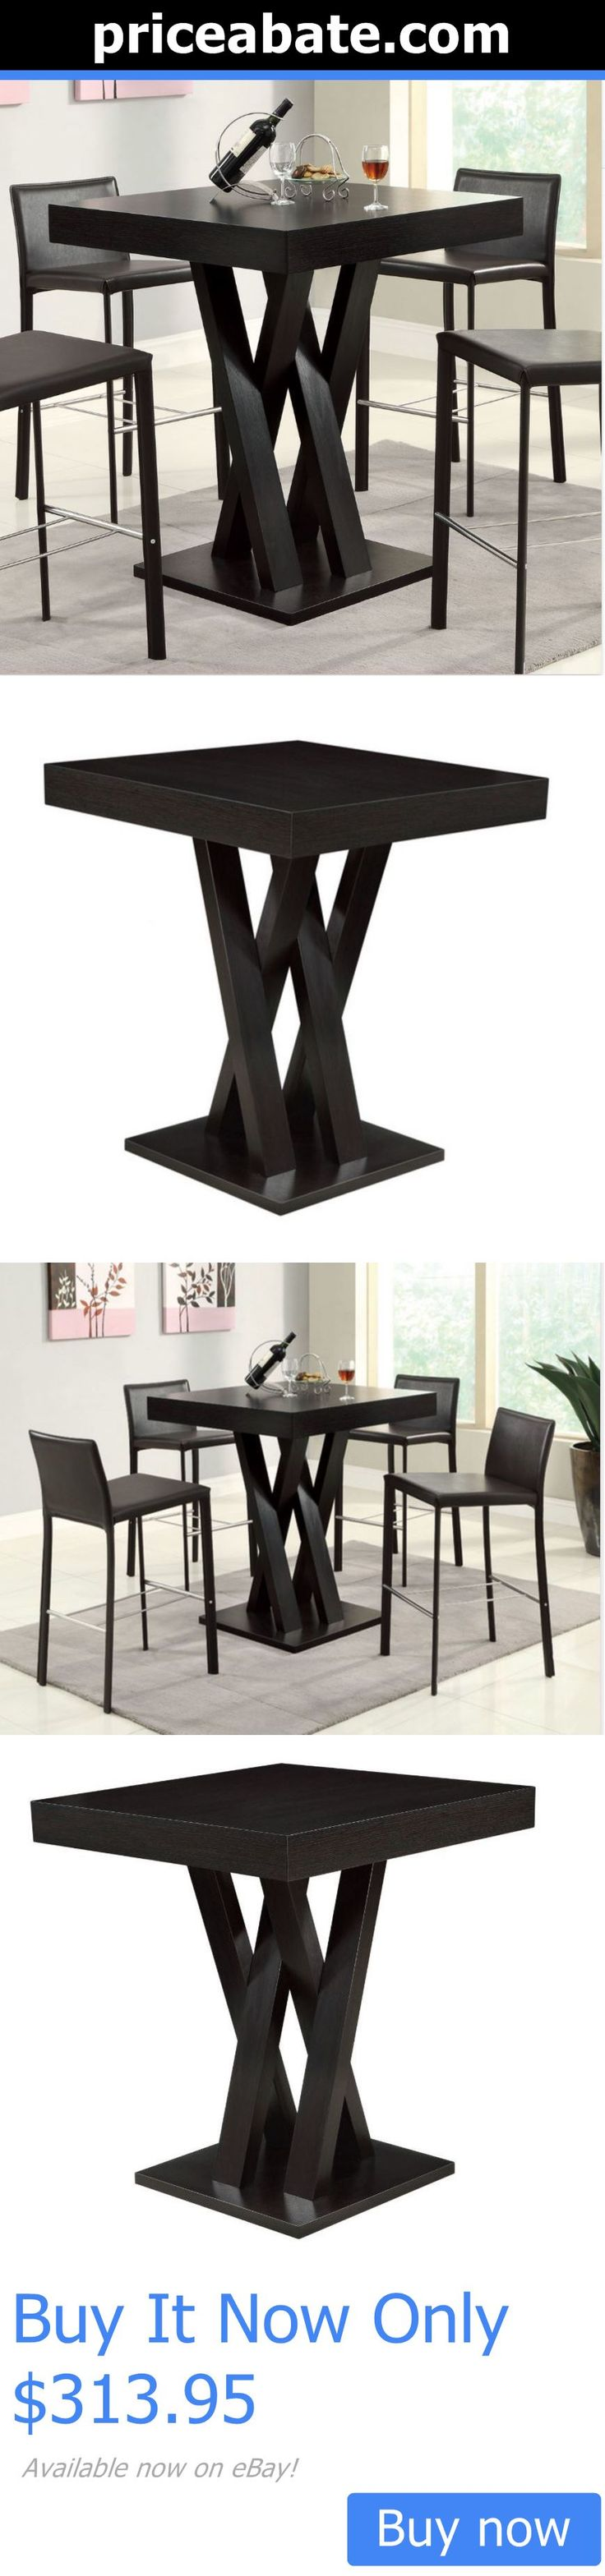 Best 25 High Dining Table Ideas On Pinterest  High Table Kitchen Stunning Dining Room Furniture Clearance Design Decoration